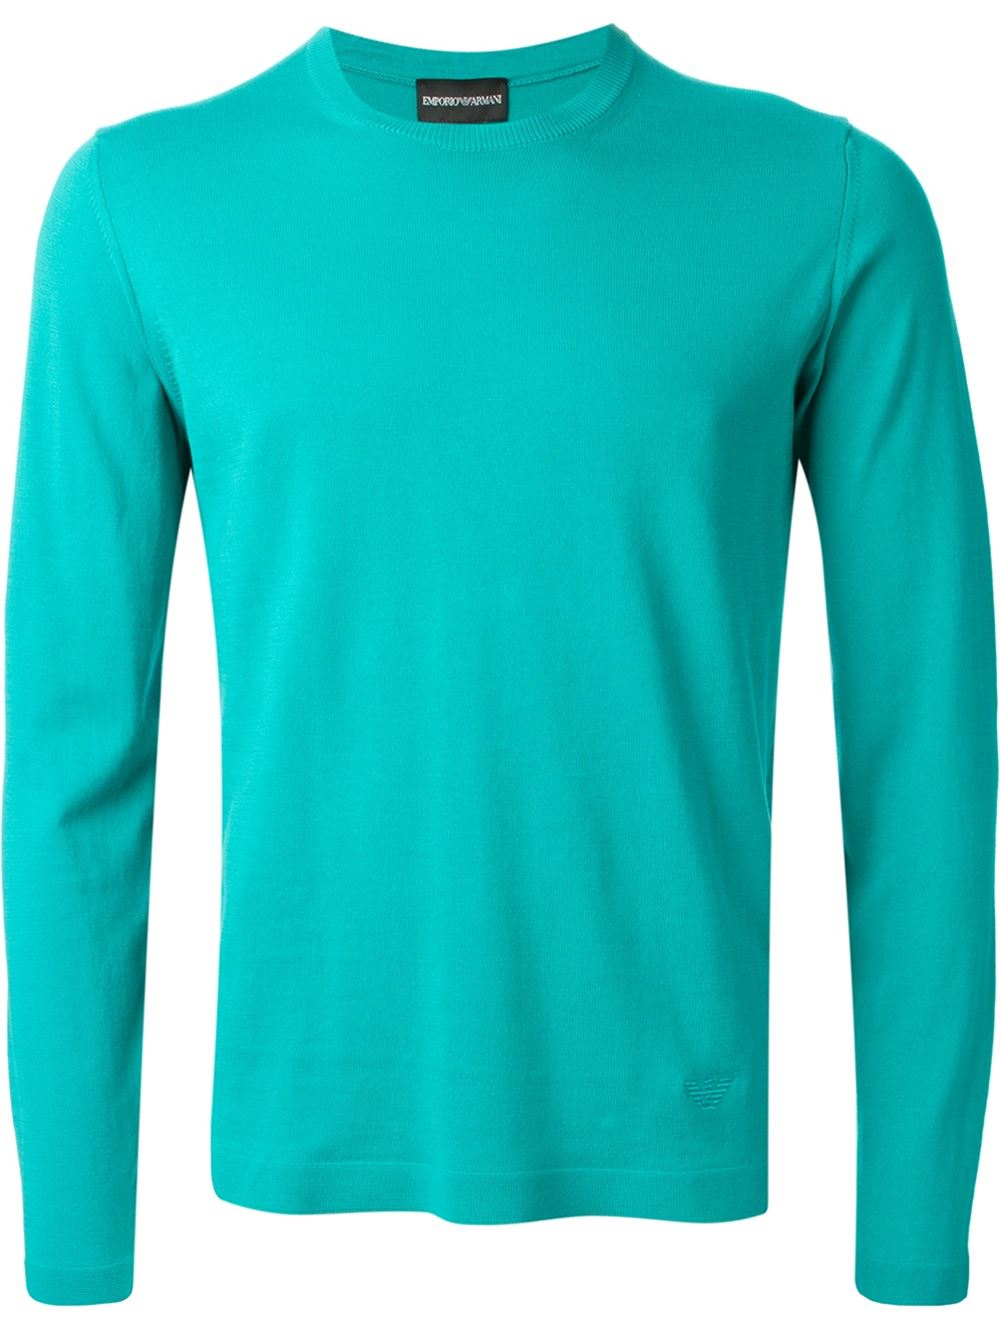 emporio armani fine knit sweater in green for men lyst. Black Bedroom Furniture Sets. Home Design Ideas